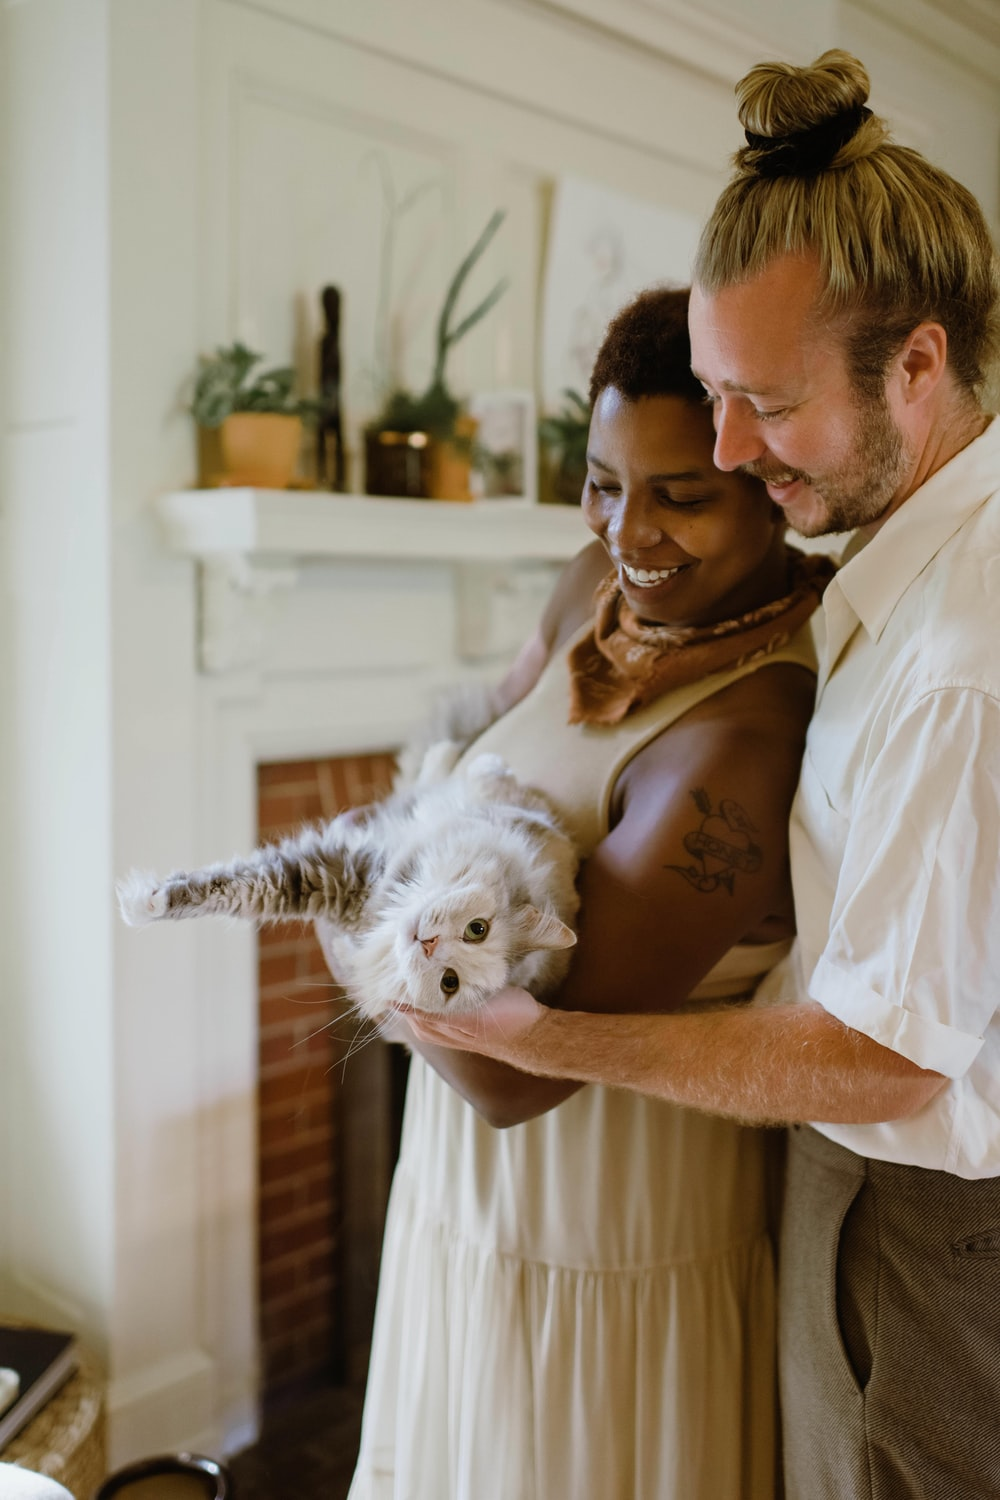 500 Couple Pictures Download Free Images On Unsplash